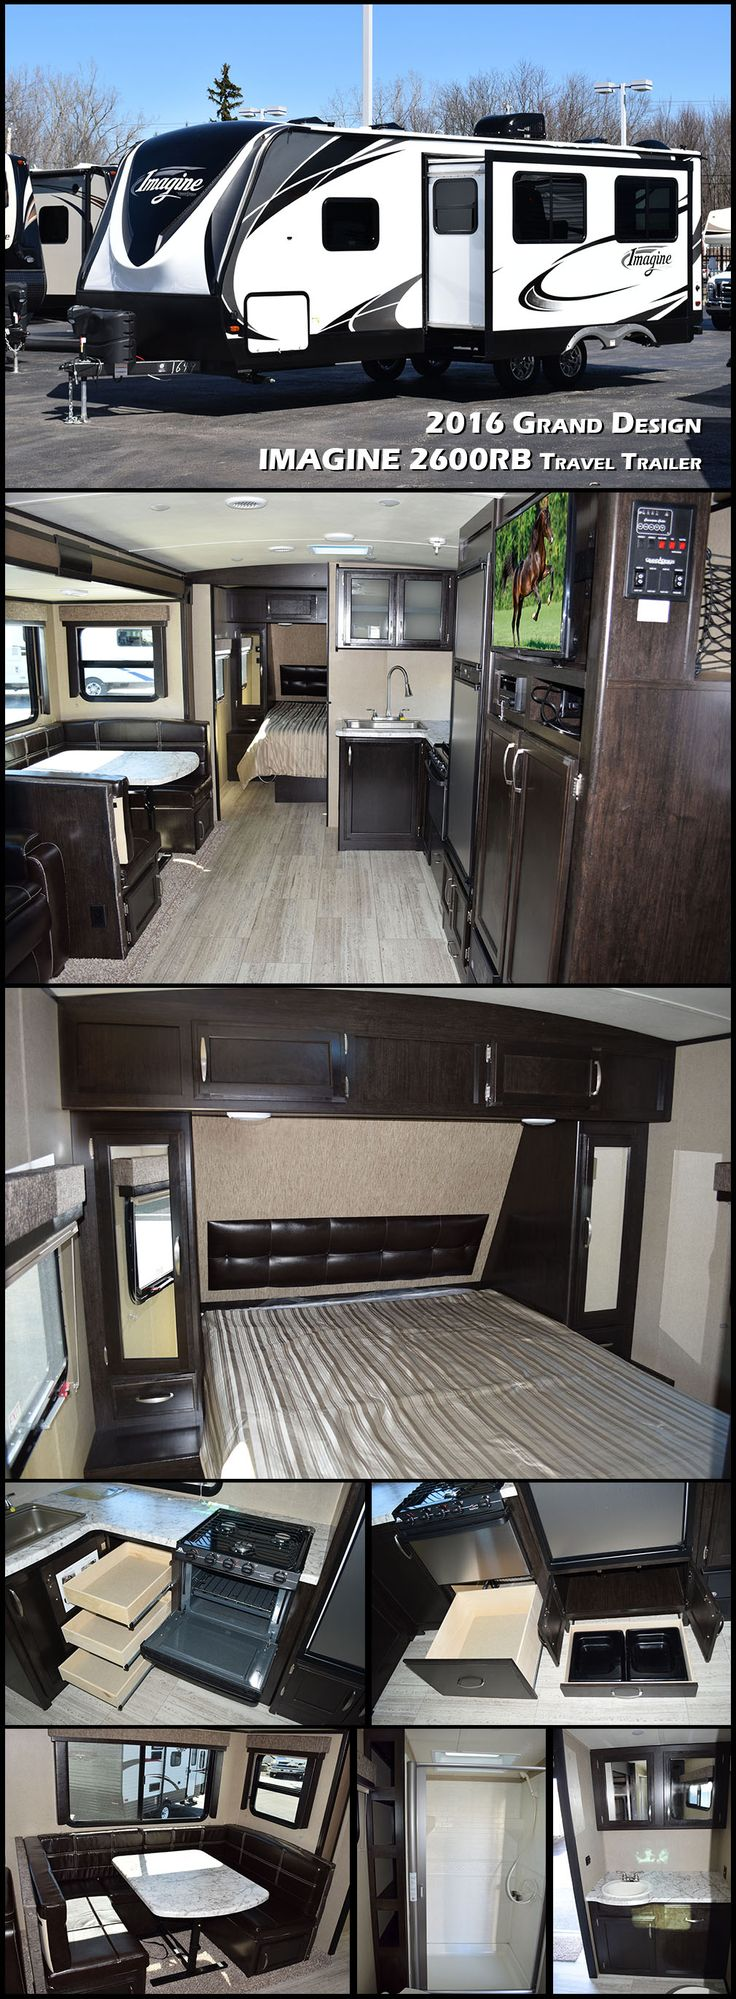 Imagine enjoying some time away from home in this 2016 Imagine 2600RB travel trailer by Grand Design. This RV hits the towing sweet spot of today's medium duty trucks and SUVs. The large U-shaped dinette seats the whole family, but also has a removable bench that becomes an ottoman or the whole thing can transform into more sleeping space. If you like to camp with your pets, the built-in pet dish drawer will be one of your favorite features.